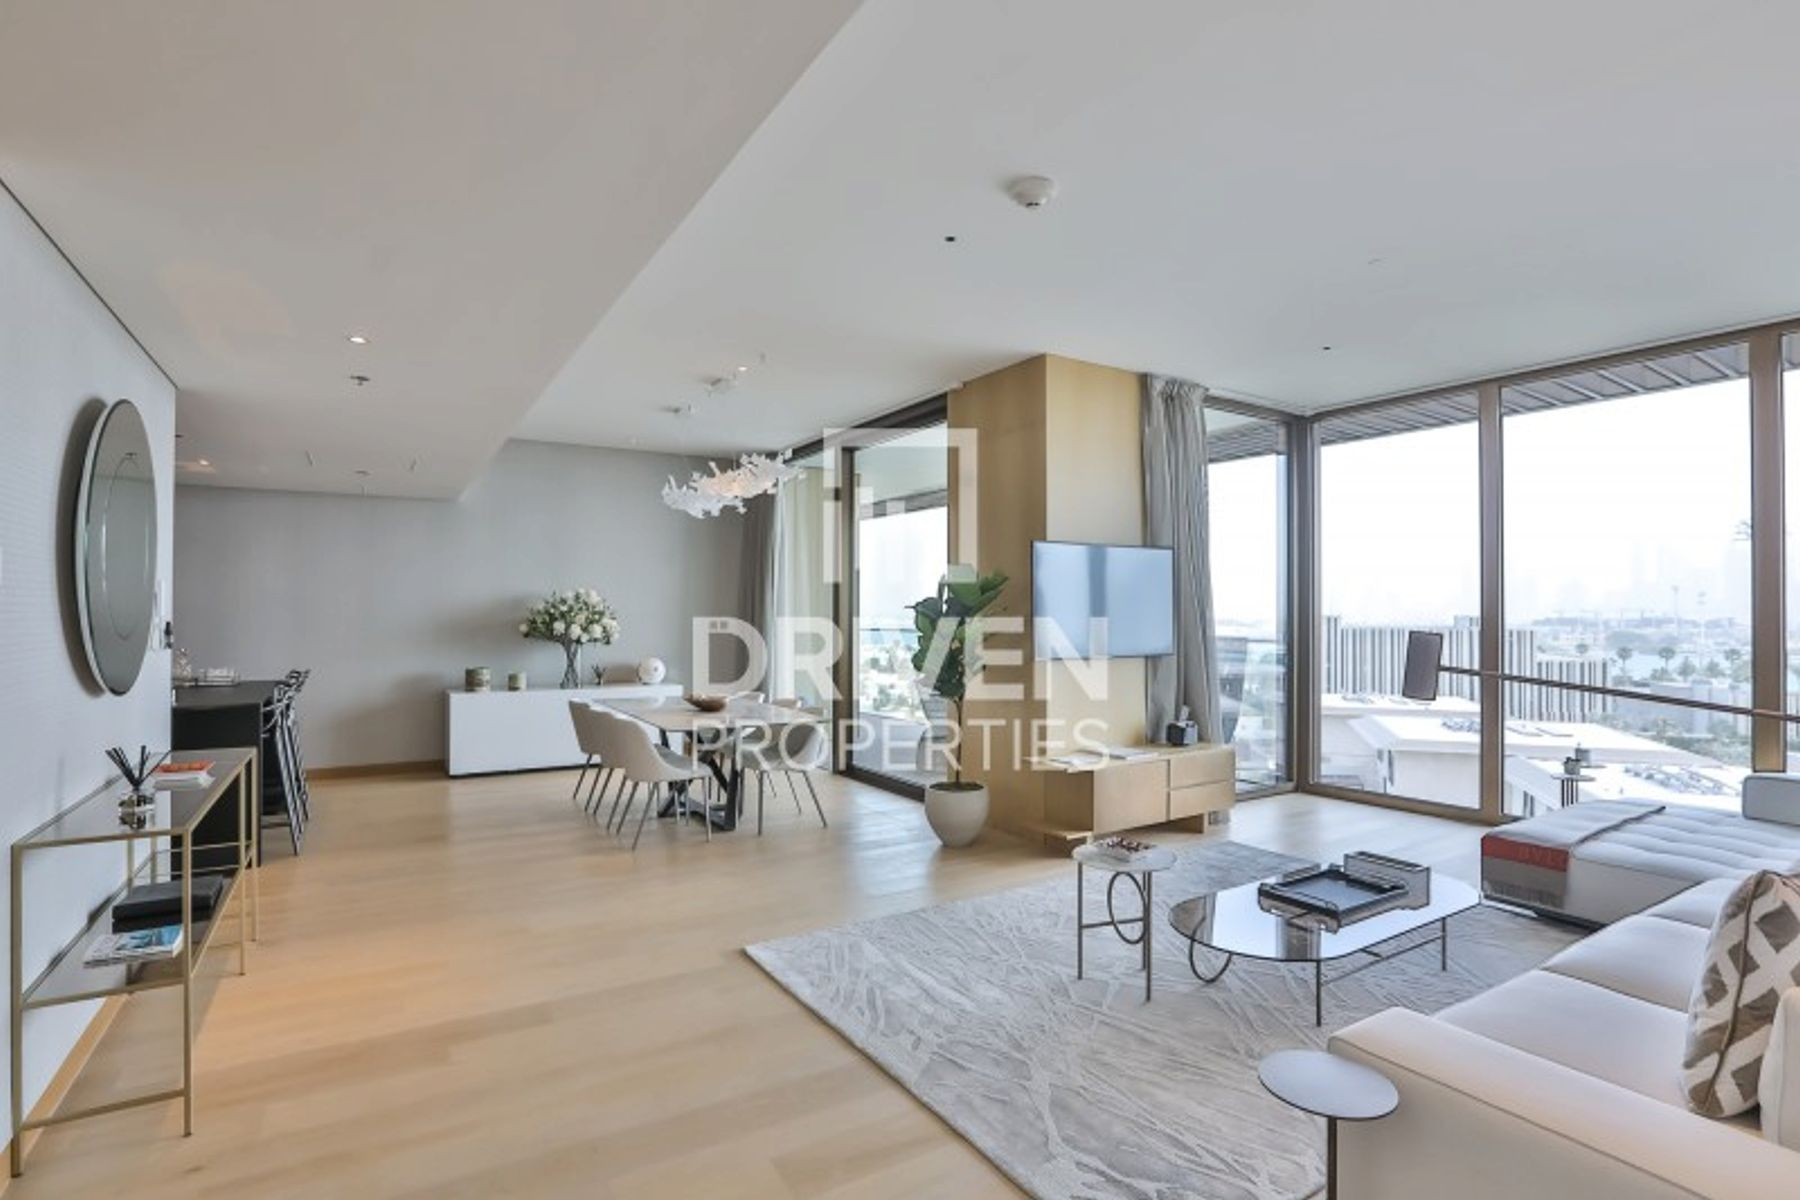 Luxurious Living and Fully Furnished Apt